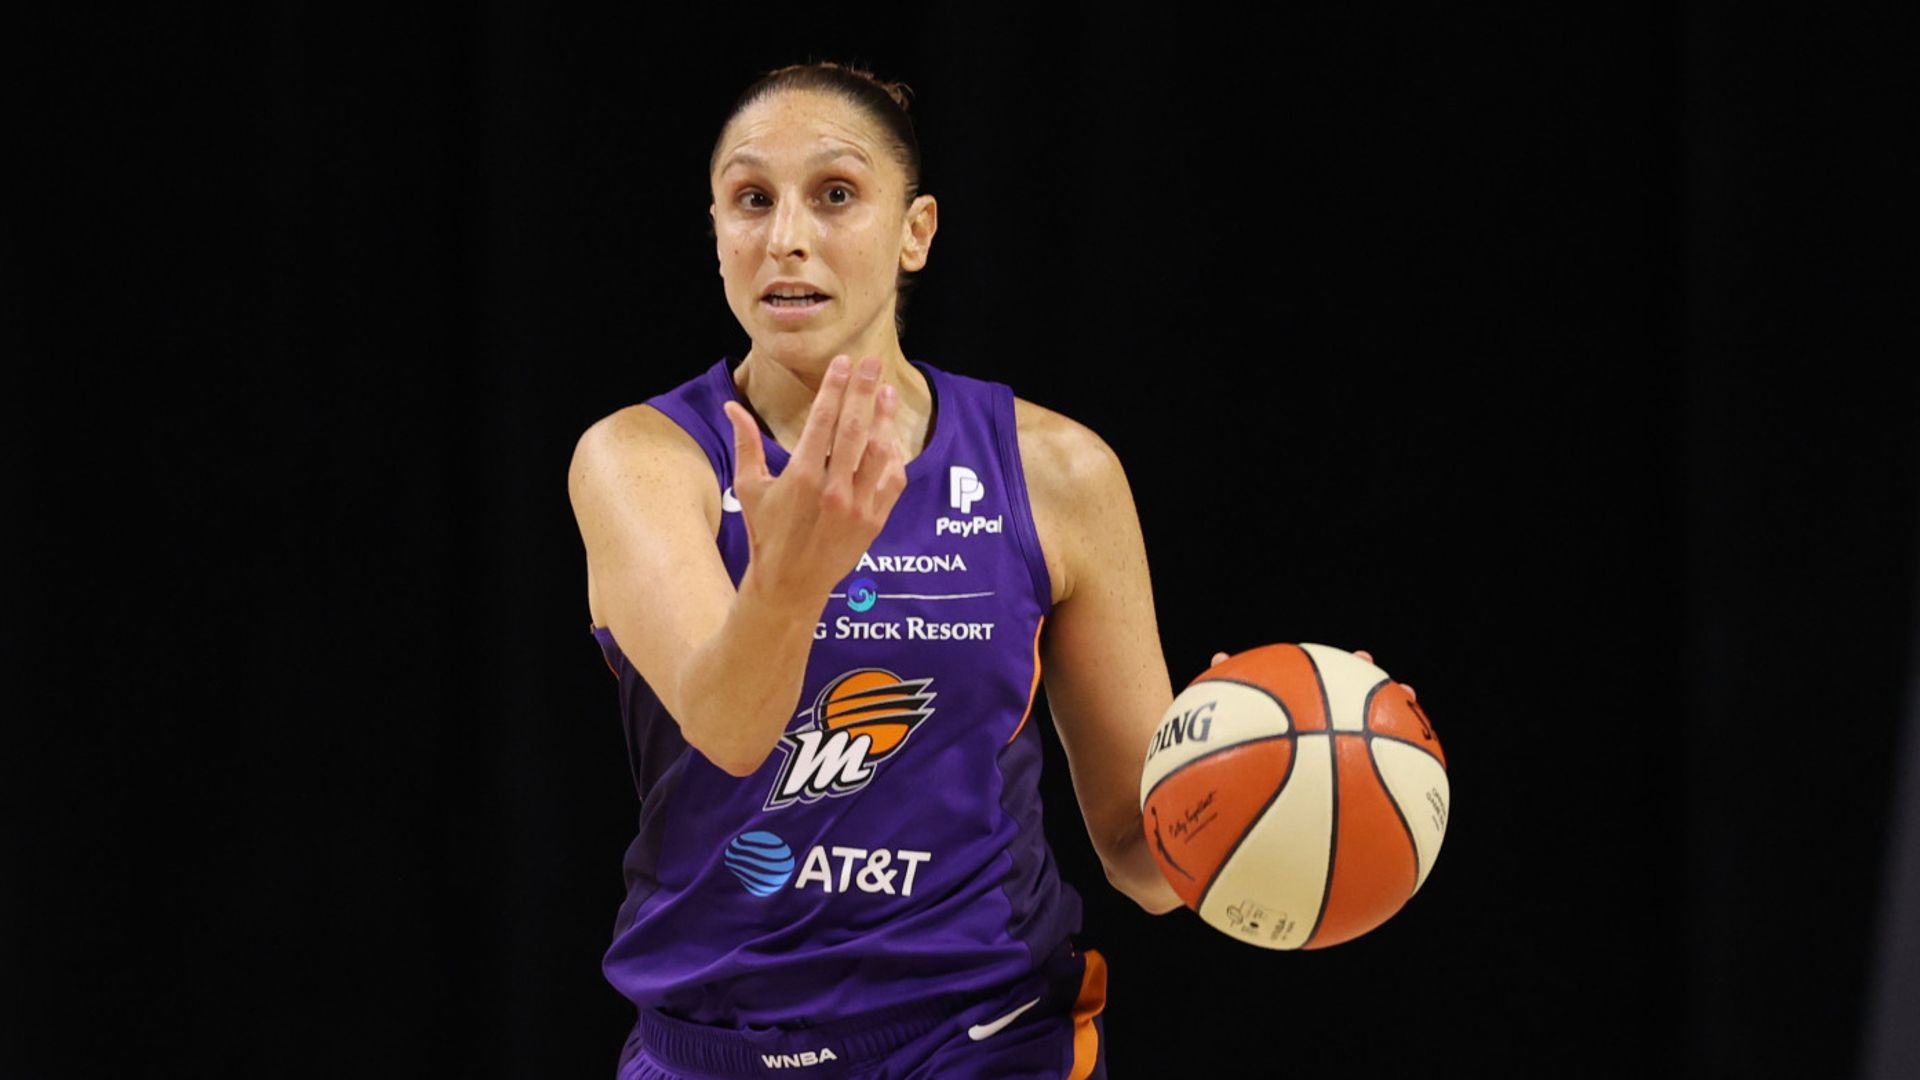 WNBA: Taurasi leads Mercury to fourth straight win - sky sports